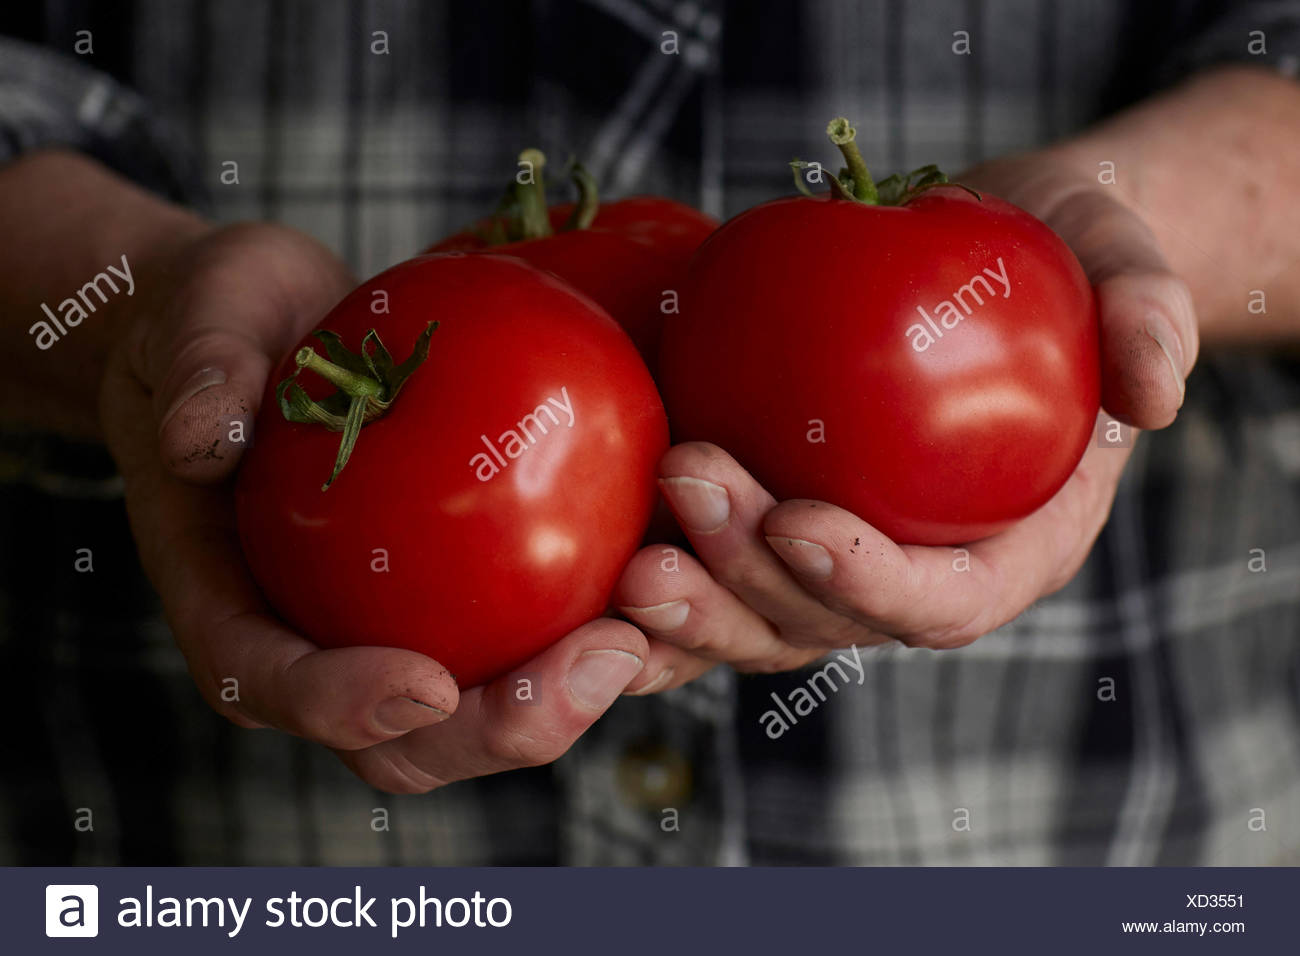 close up photograph of mans hands holding freshly picked, vine ripe red tomatoes, with dirt on his hands, wearing a black and gr - Stock Image